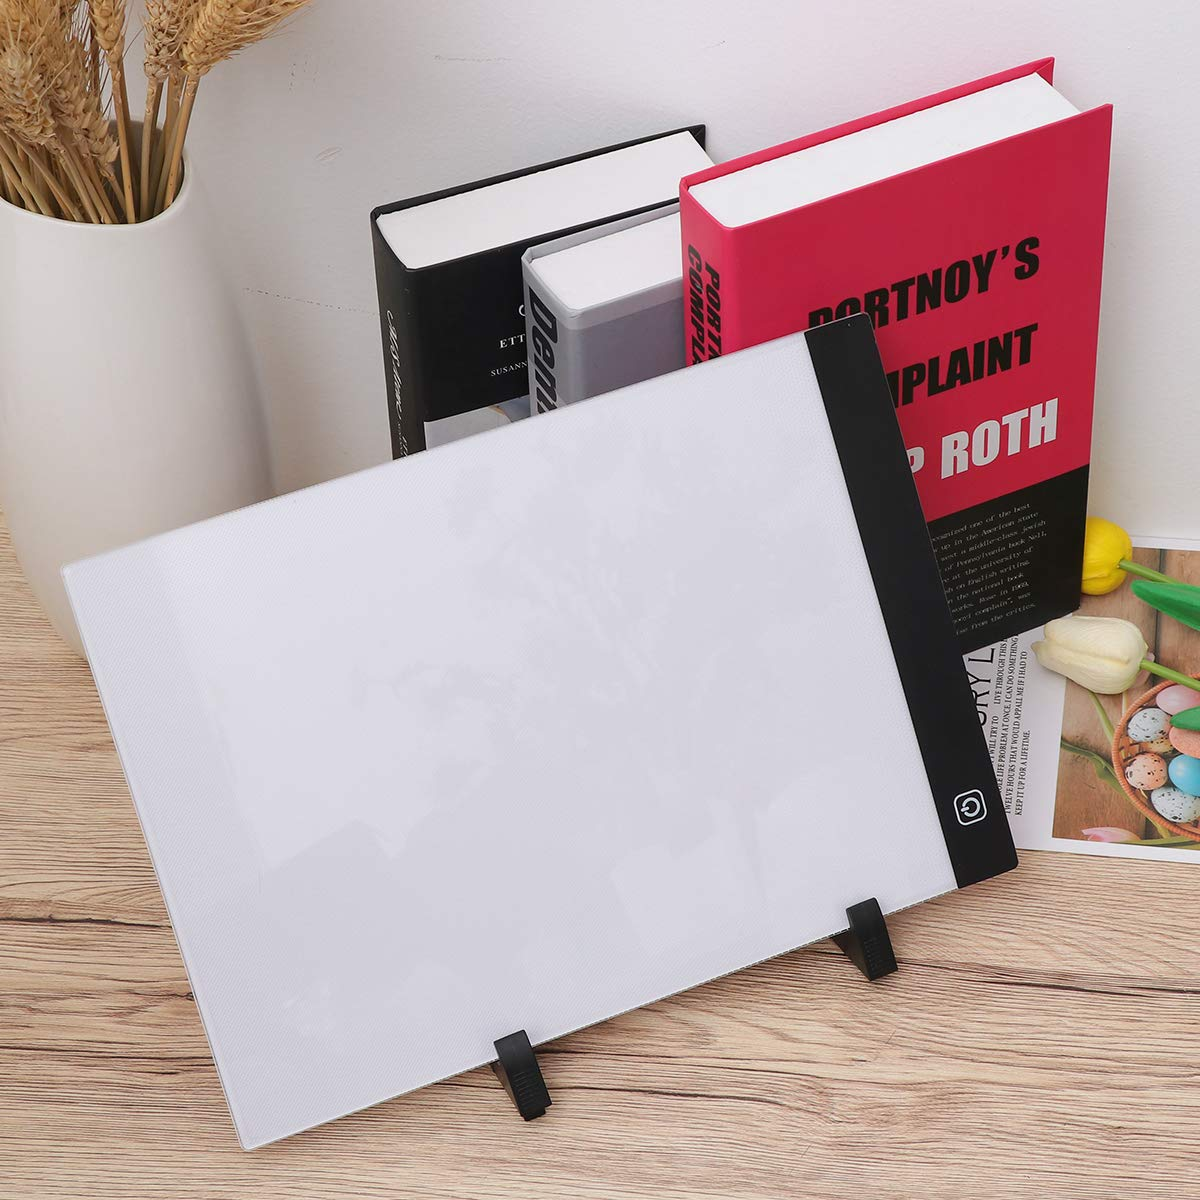 STOBOK Light Drawing Board 1 Set A4 LED Light Box Drawing Sketch Tablet Tracking Artist Backing Plate Diamond Painting Tools for Desktop Table Easel Craft Workstation by STOBOK (Image #9)